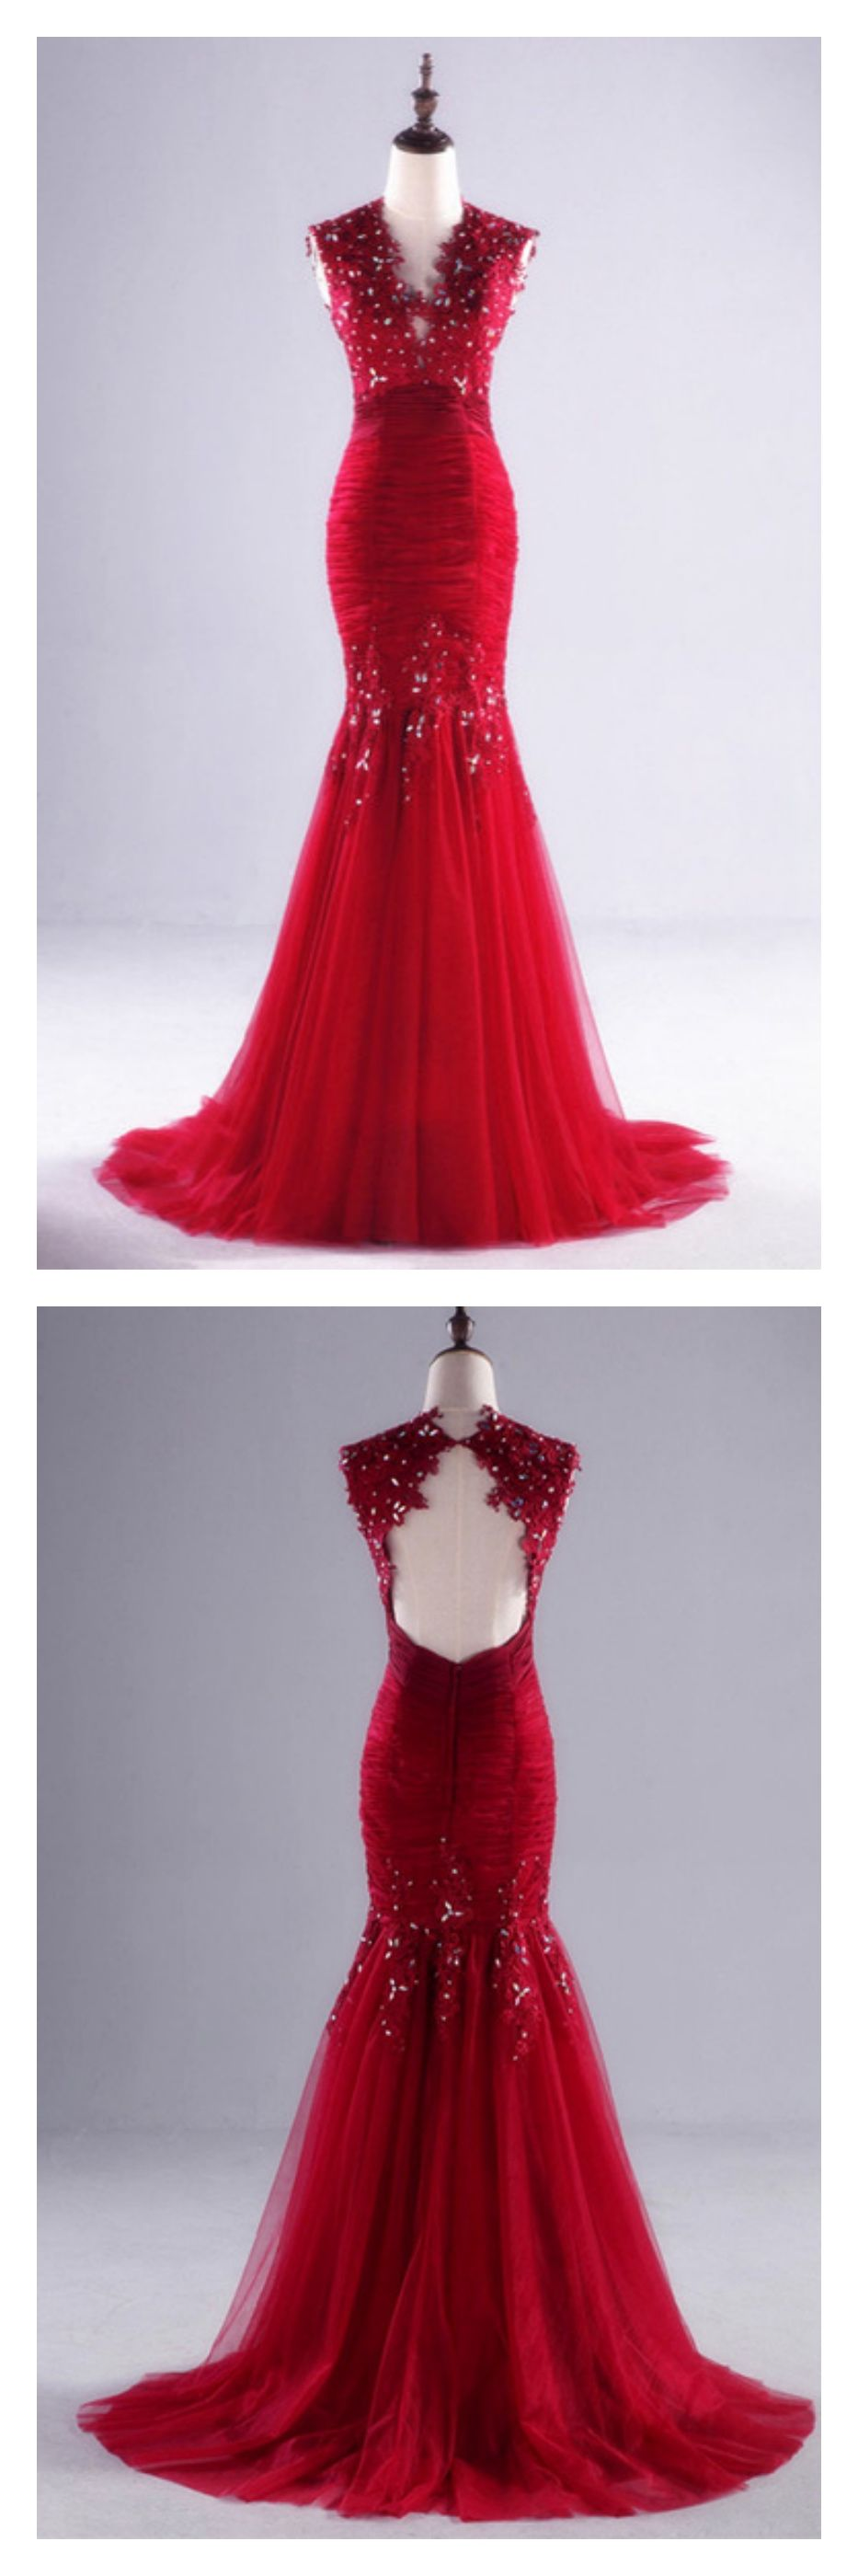 Red applique long mermaid prom dresses evening dresses ed